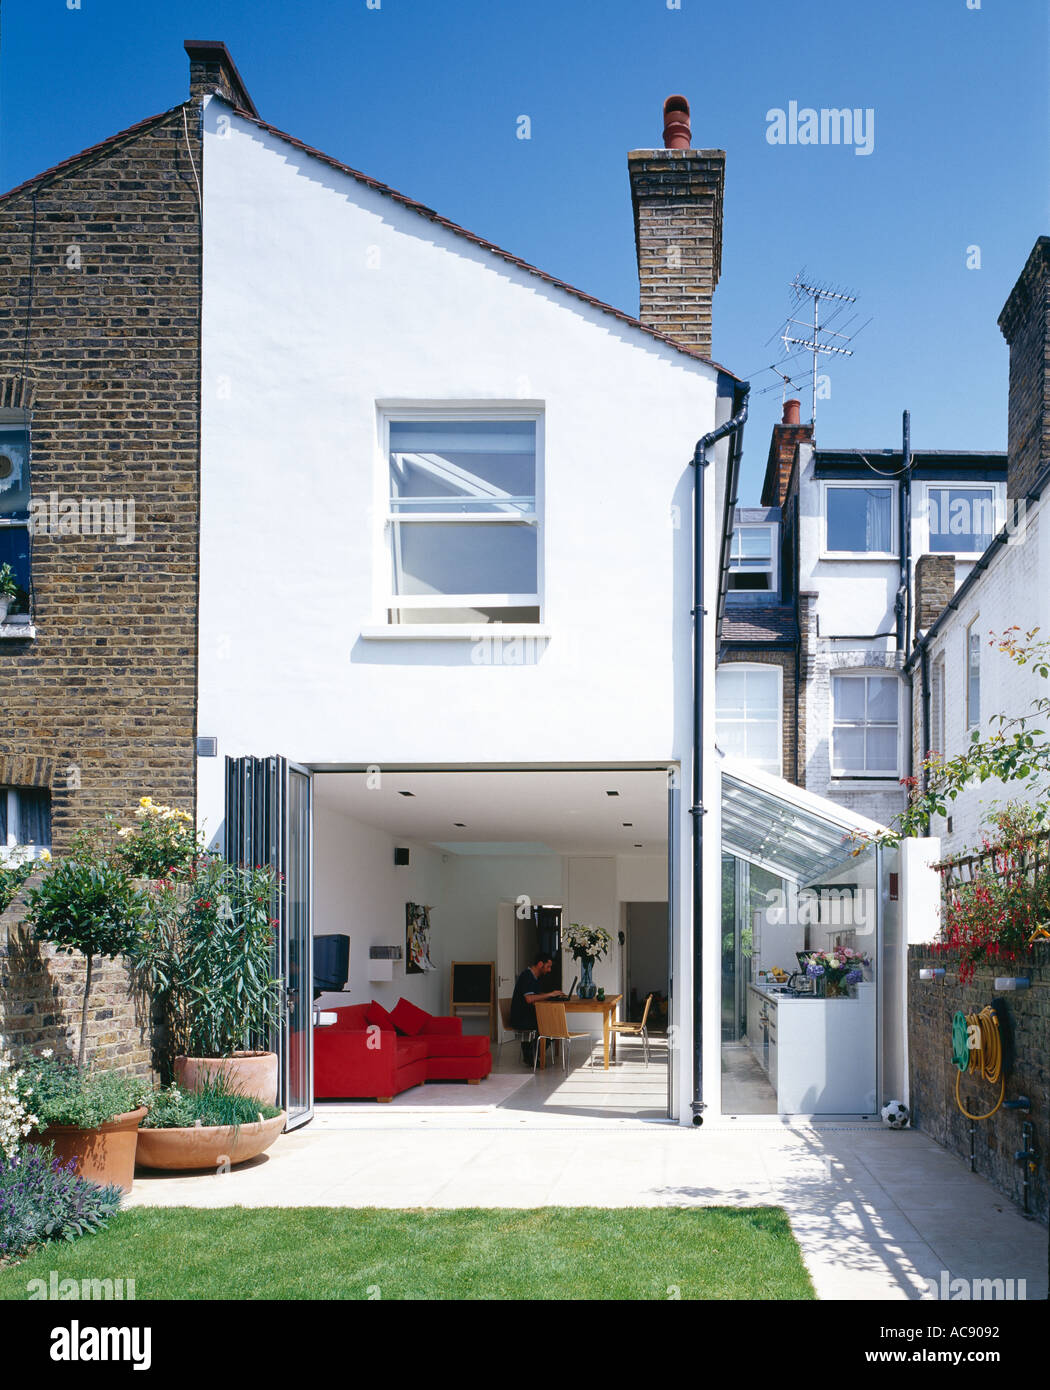 patio extensions 2. Modern Conversion And Extension. (Rear View From Garden) - Patio Extensions 2 C